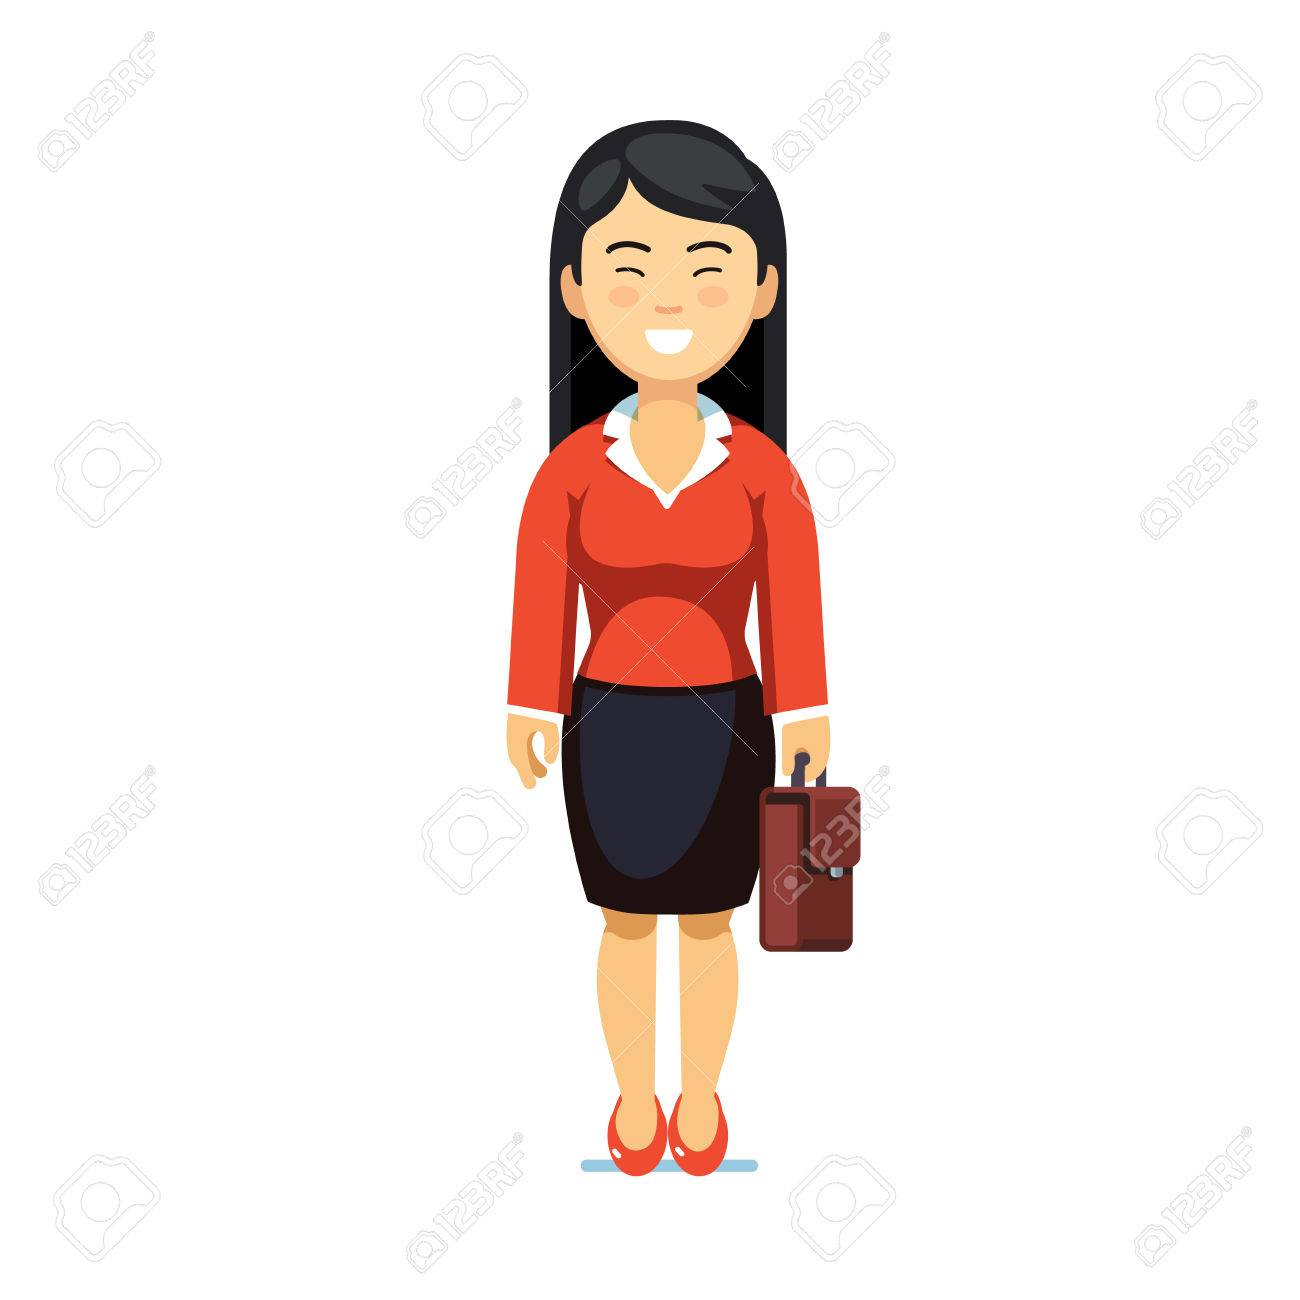 Asian business woman standing with suitcase.